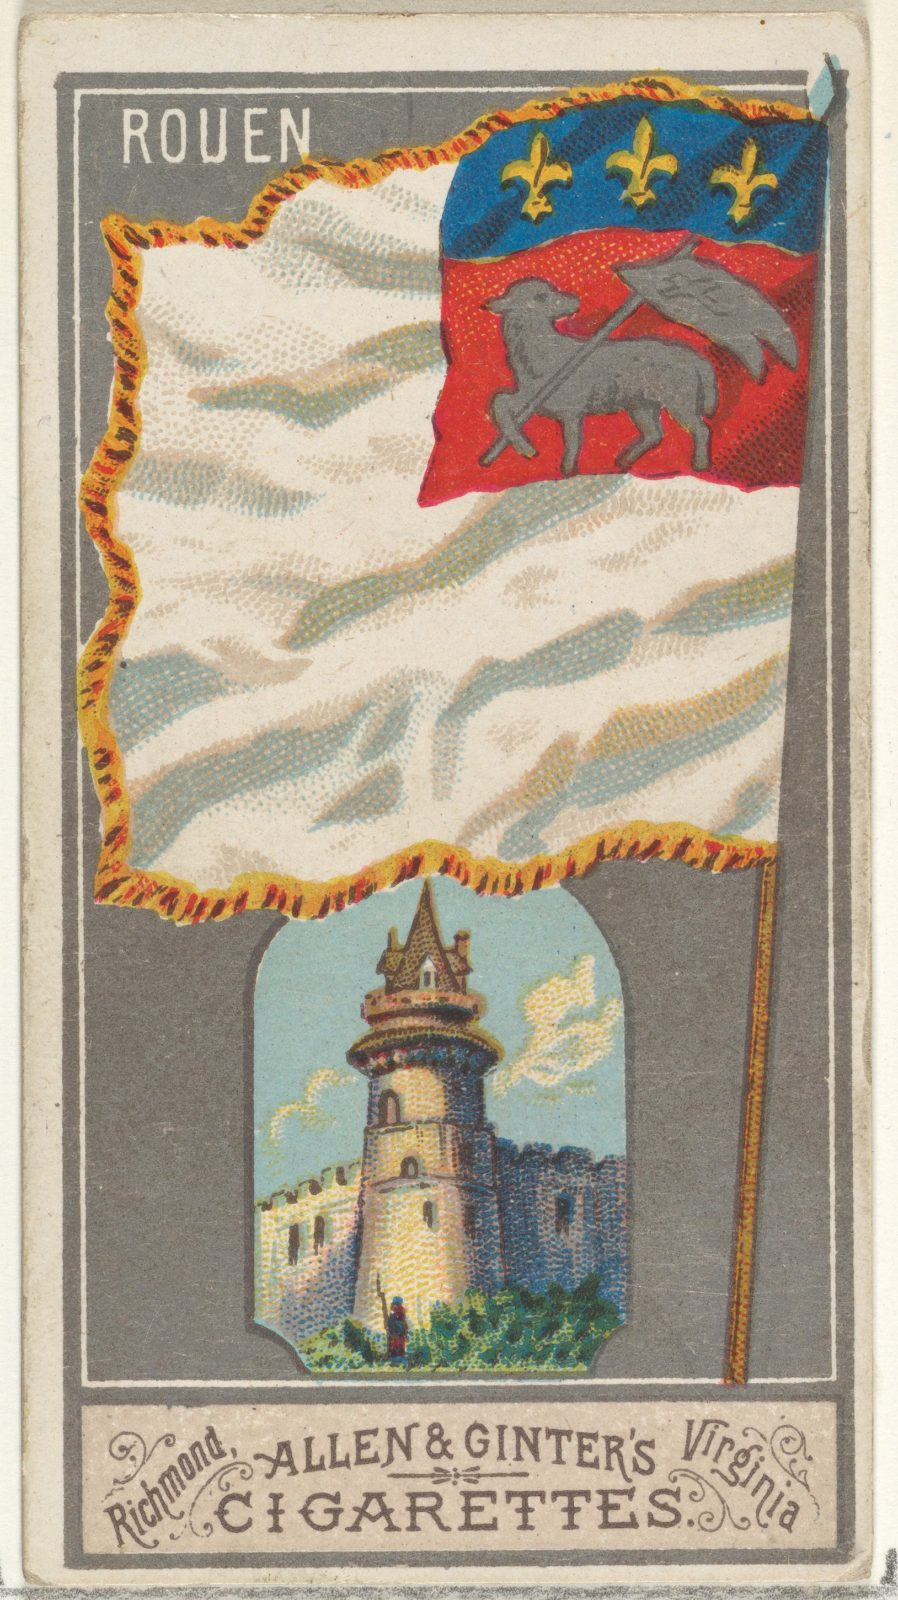 Rouen, from the City Flags series (N6) for Allen & Ginter Cigarettes Brands